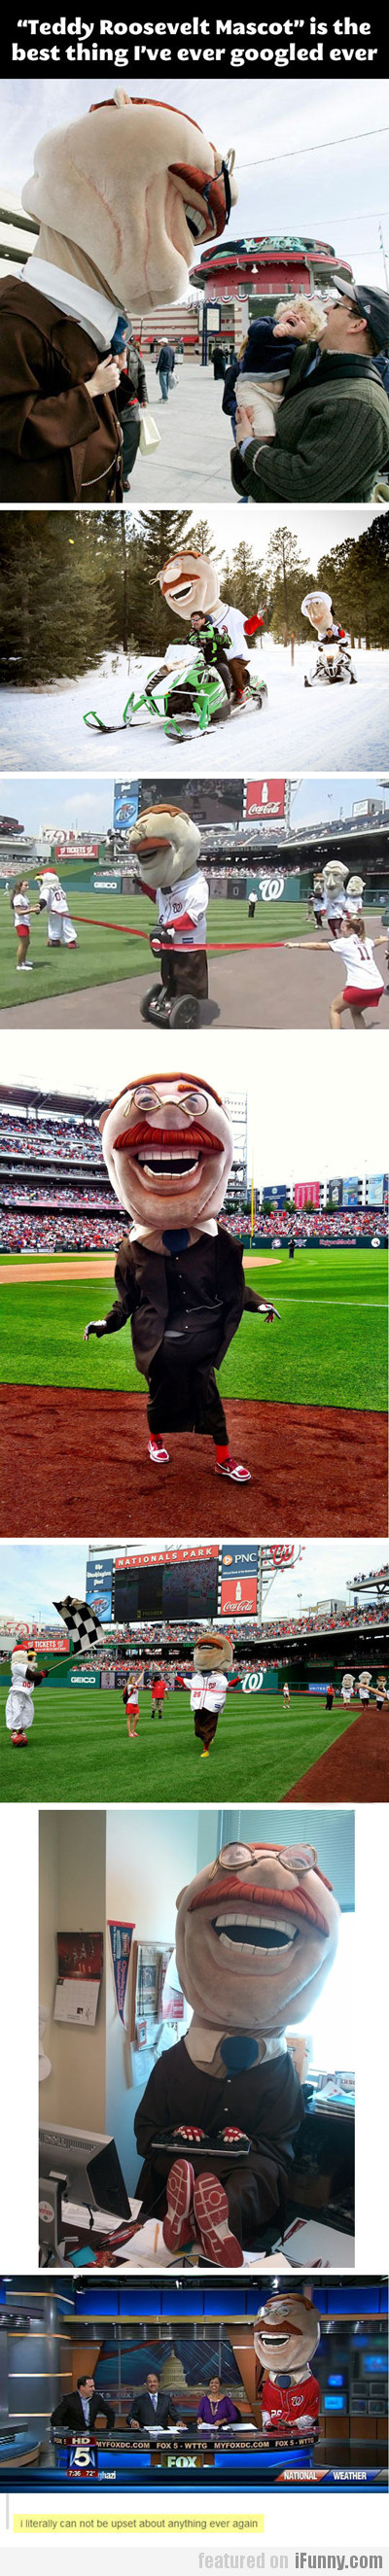 teddy roosevelt mascot is the best thing i ever...